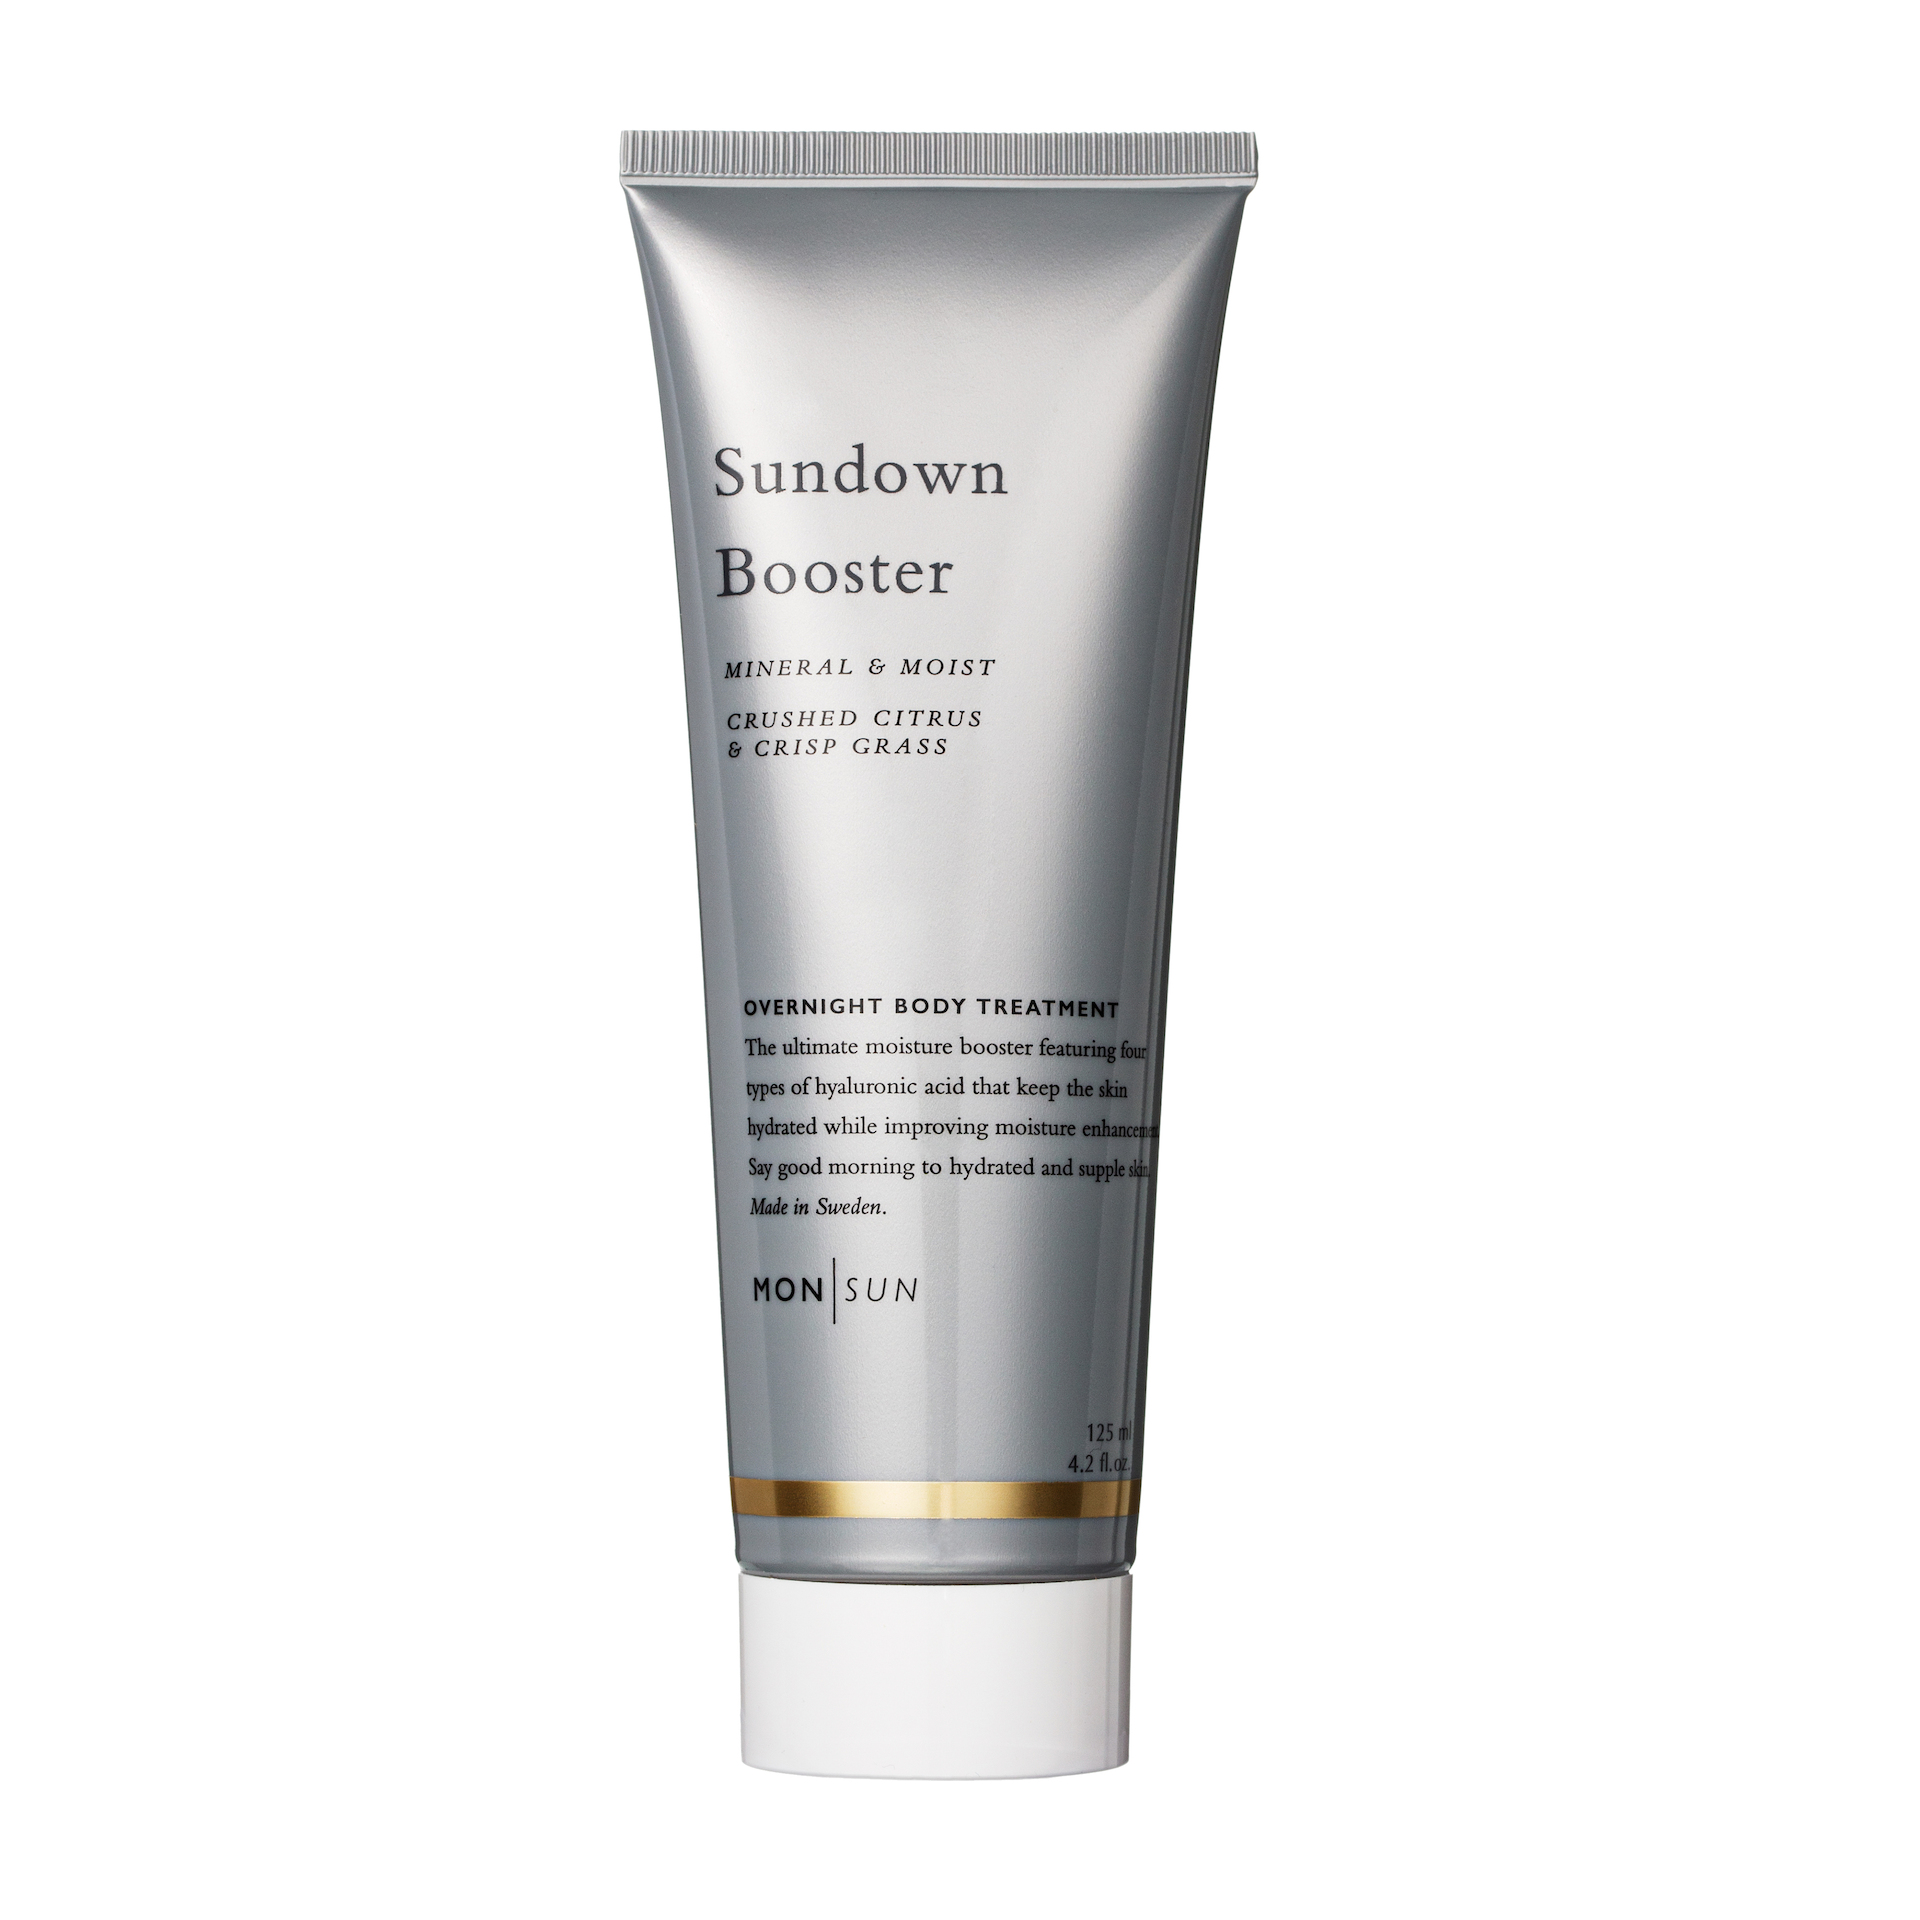 Sundown Booster Mineral & Moist Overnight Body Treatment